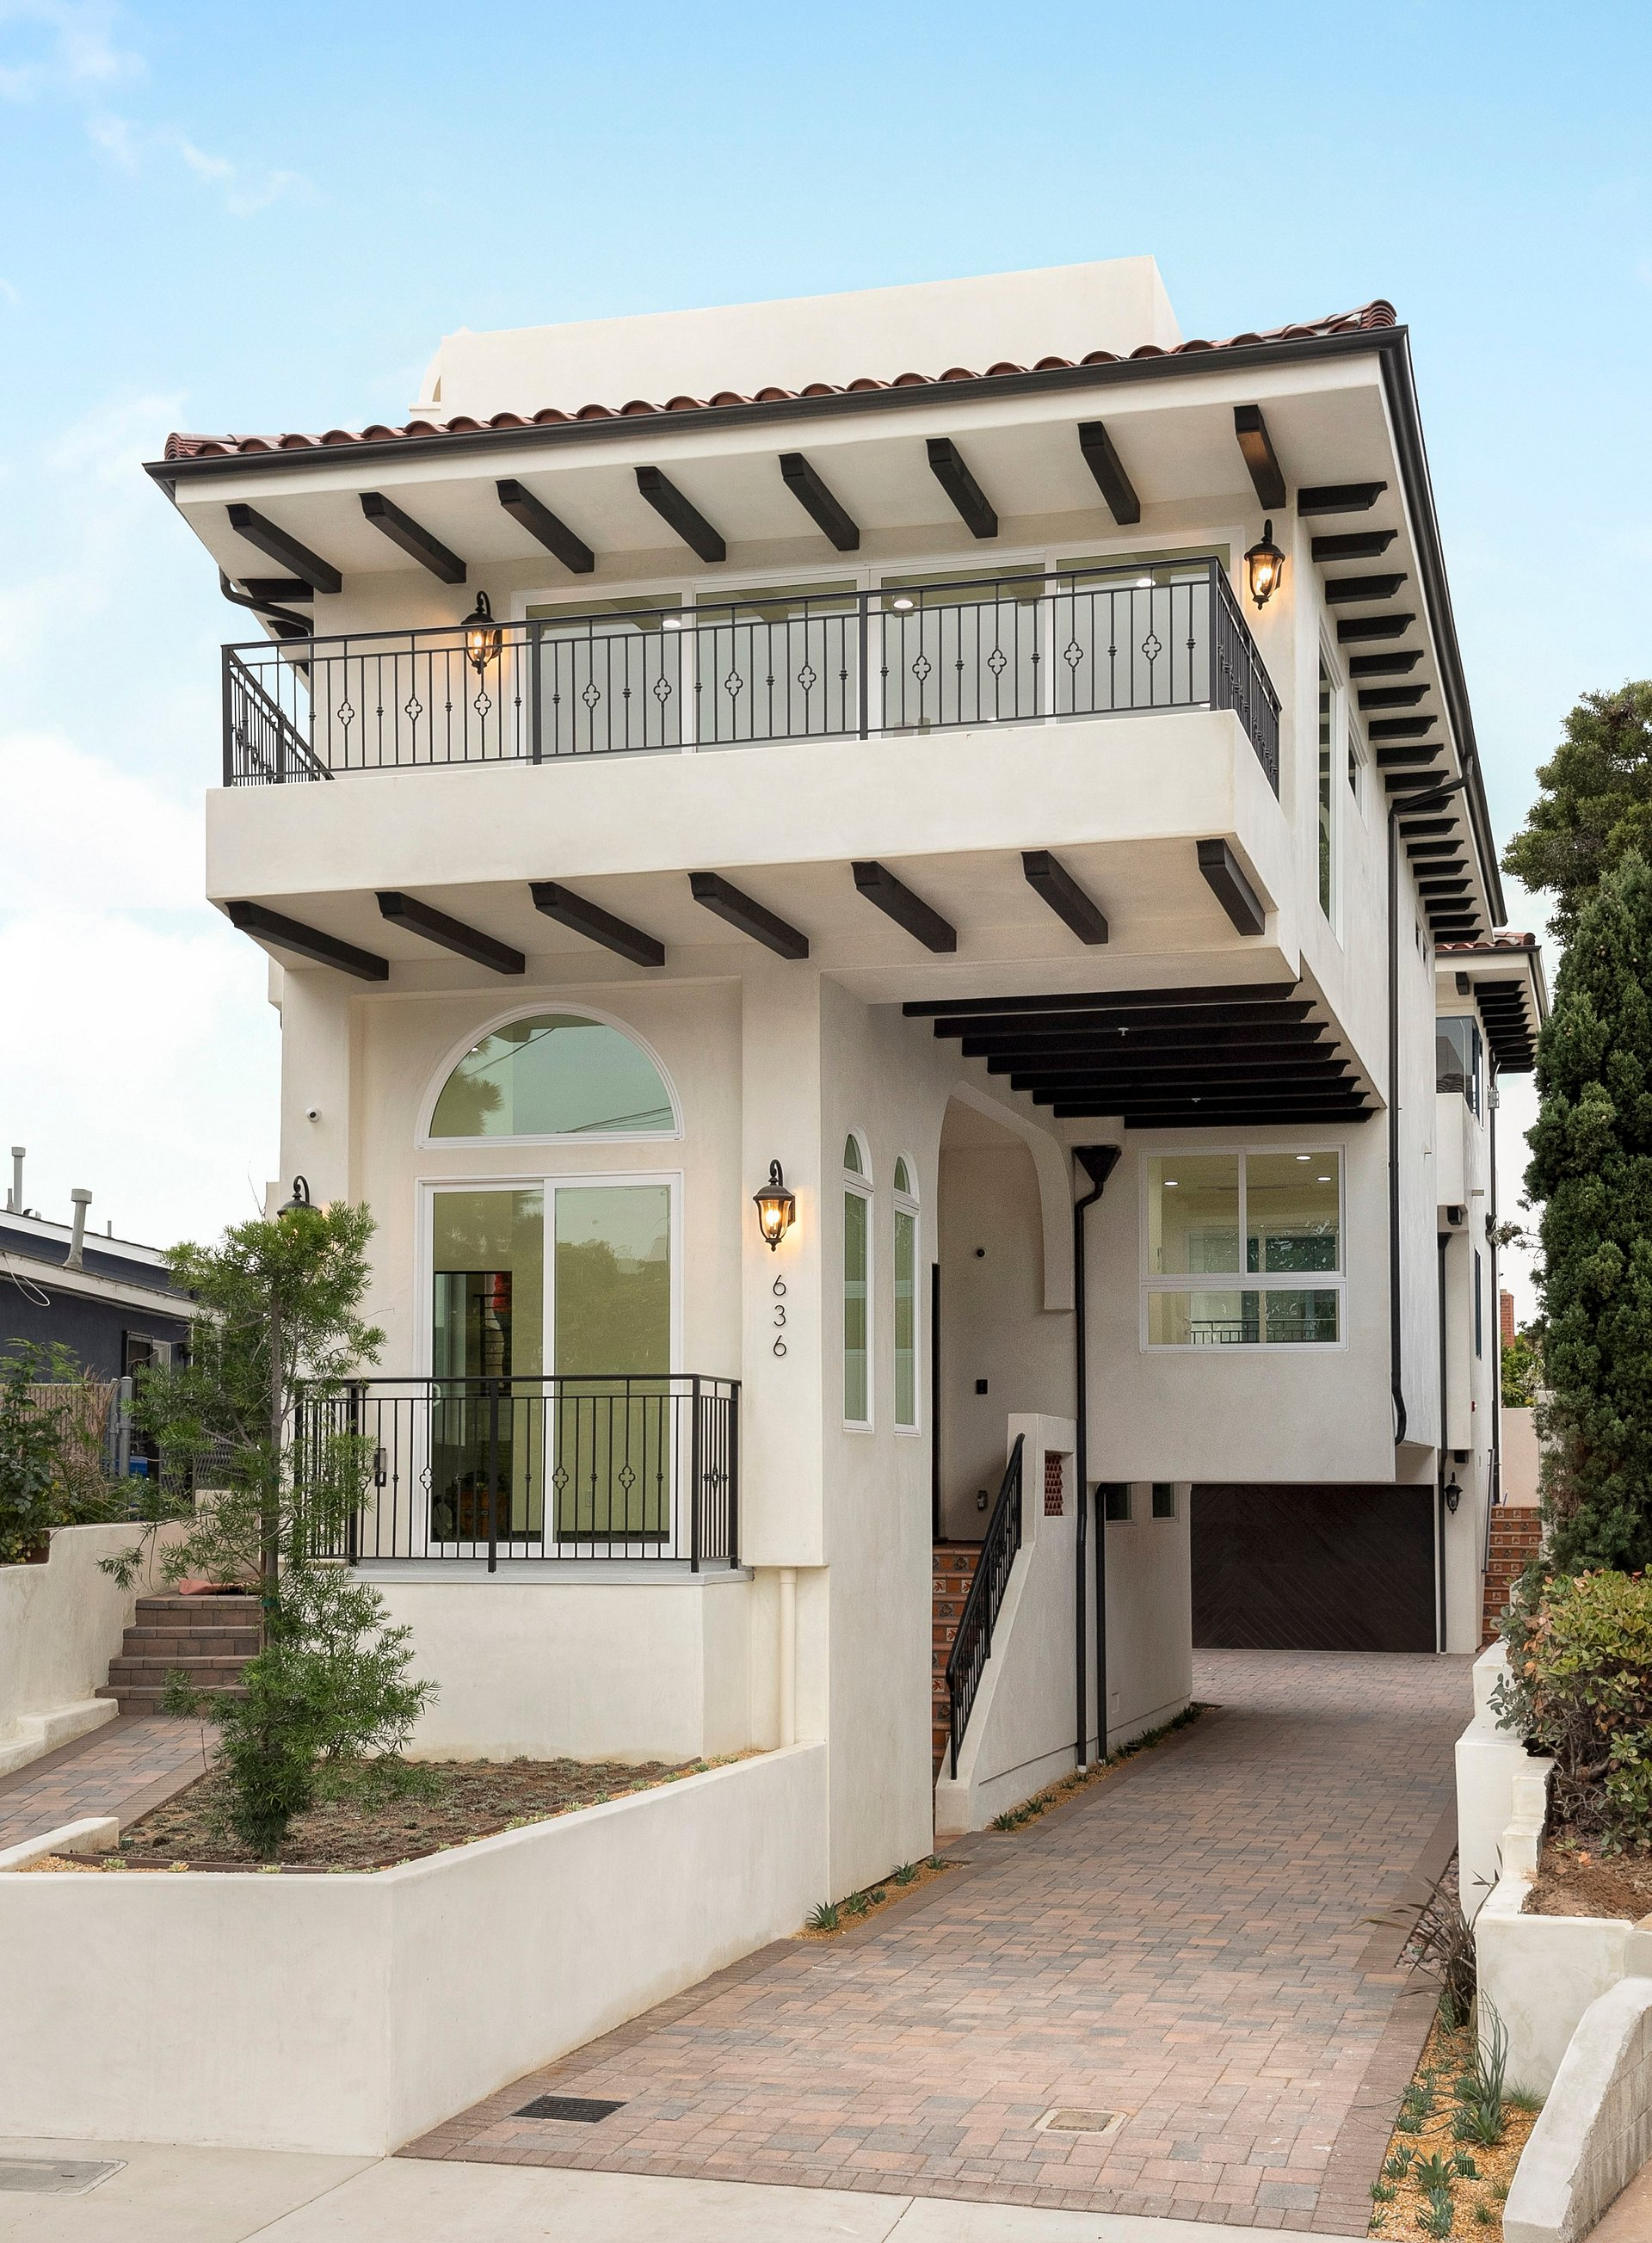 Coldwell Banker Residential Brokerage Lists Redondo Beach Property for $1.679 Million